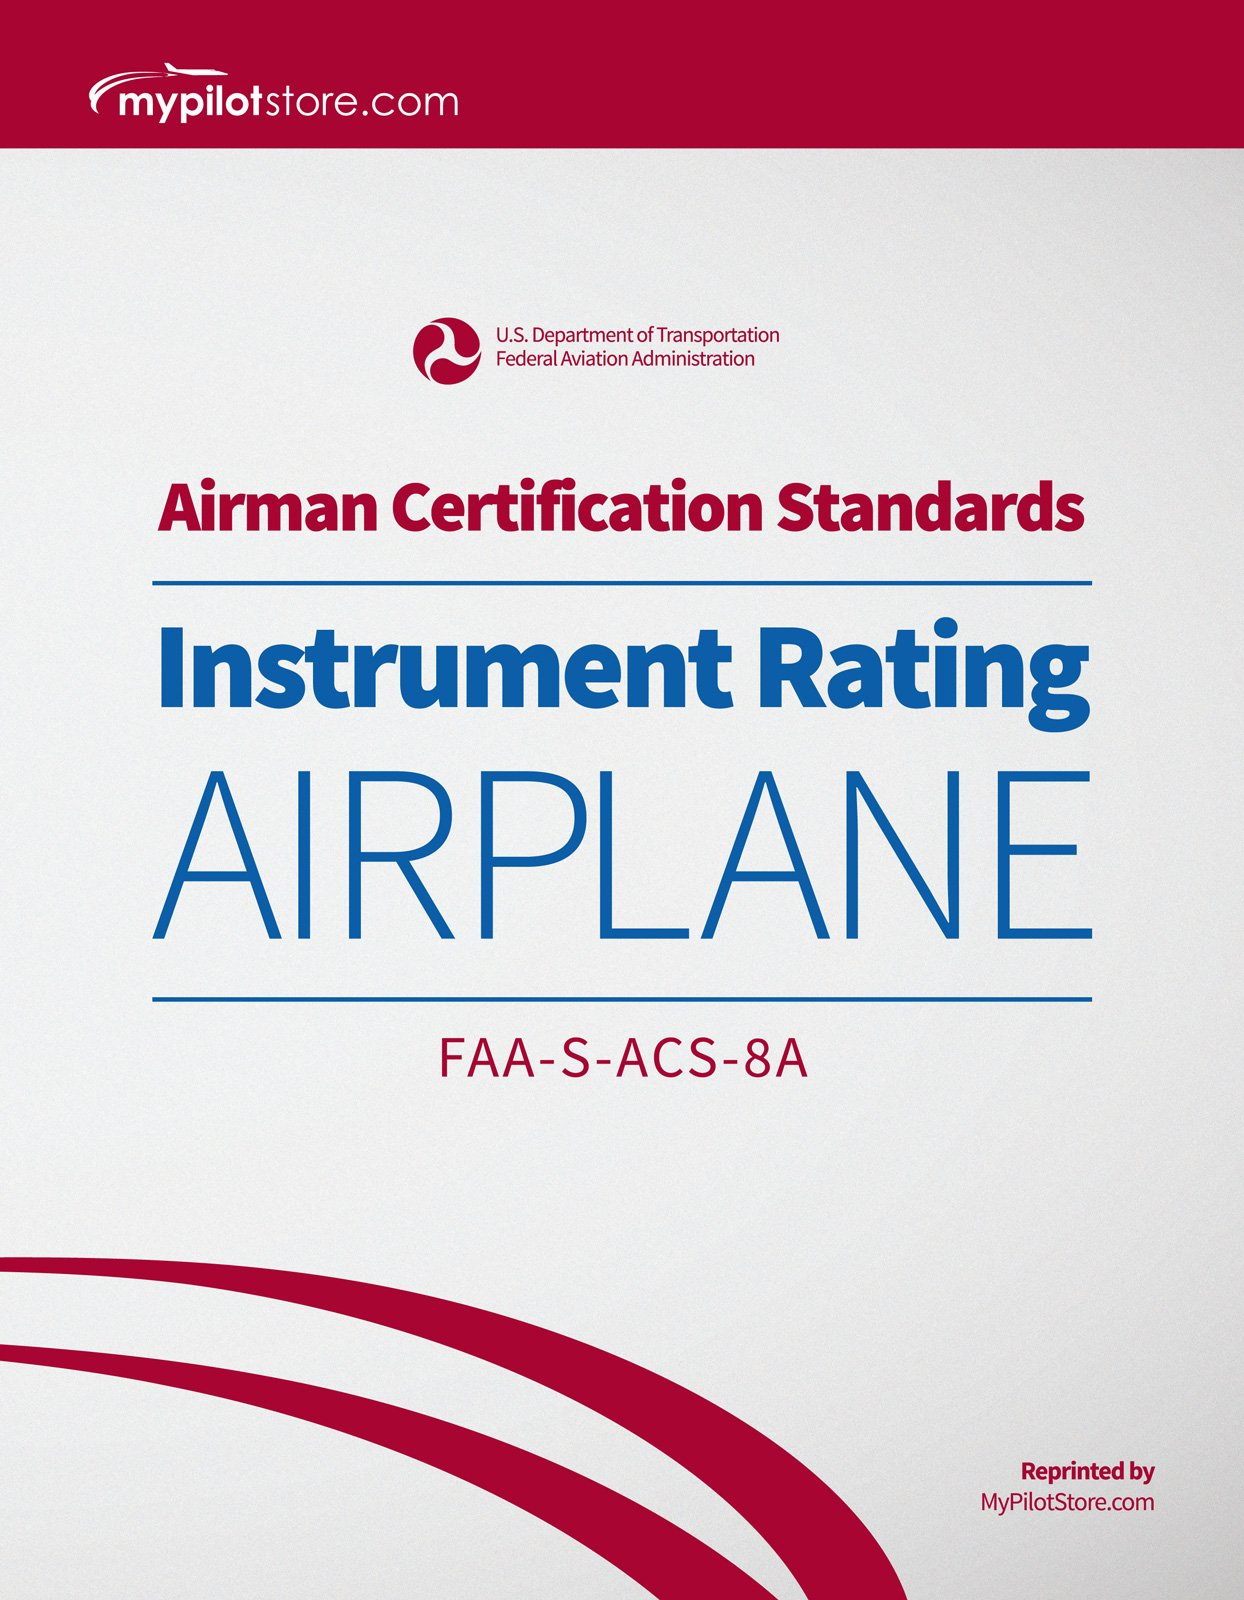 Faa airman certification standards acs instrument rating faa airman certification standards acs instrument rating airplane faa 9781936506057 amazon books xflitez Choice Image